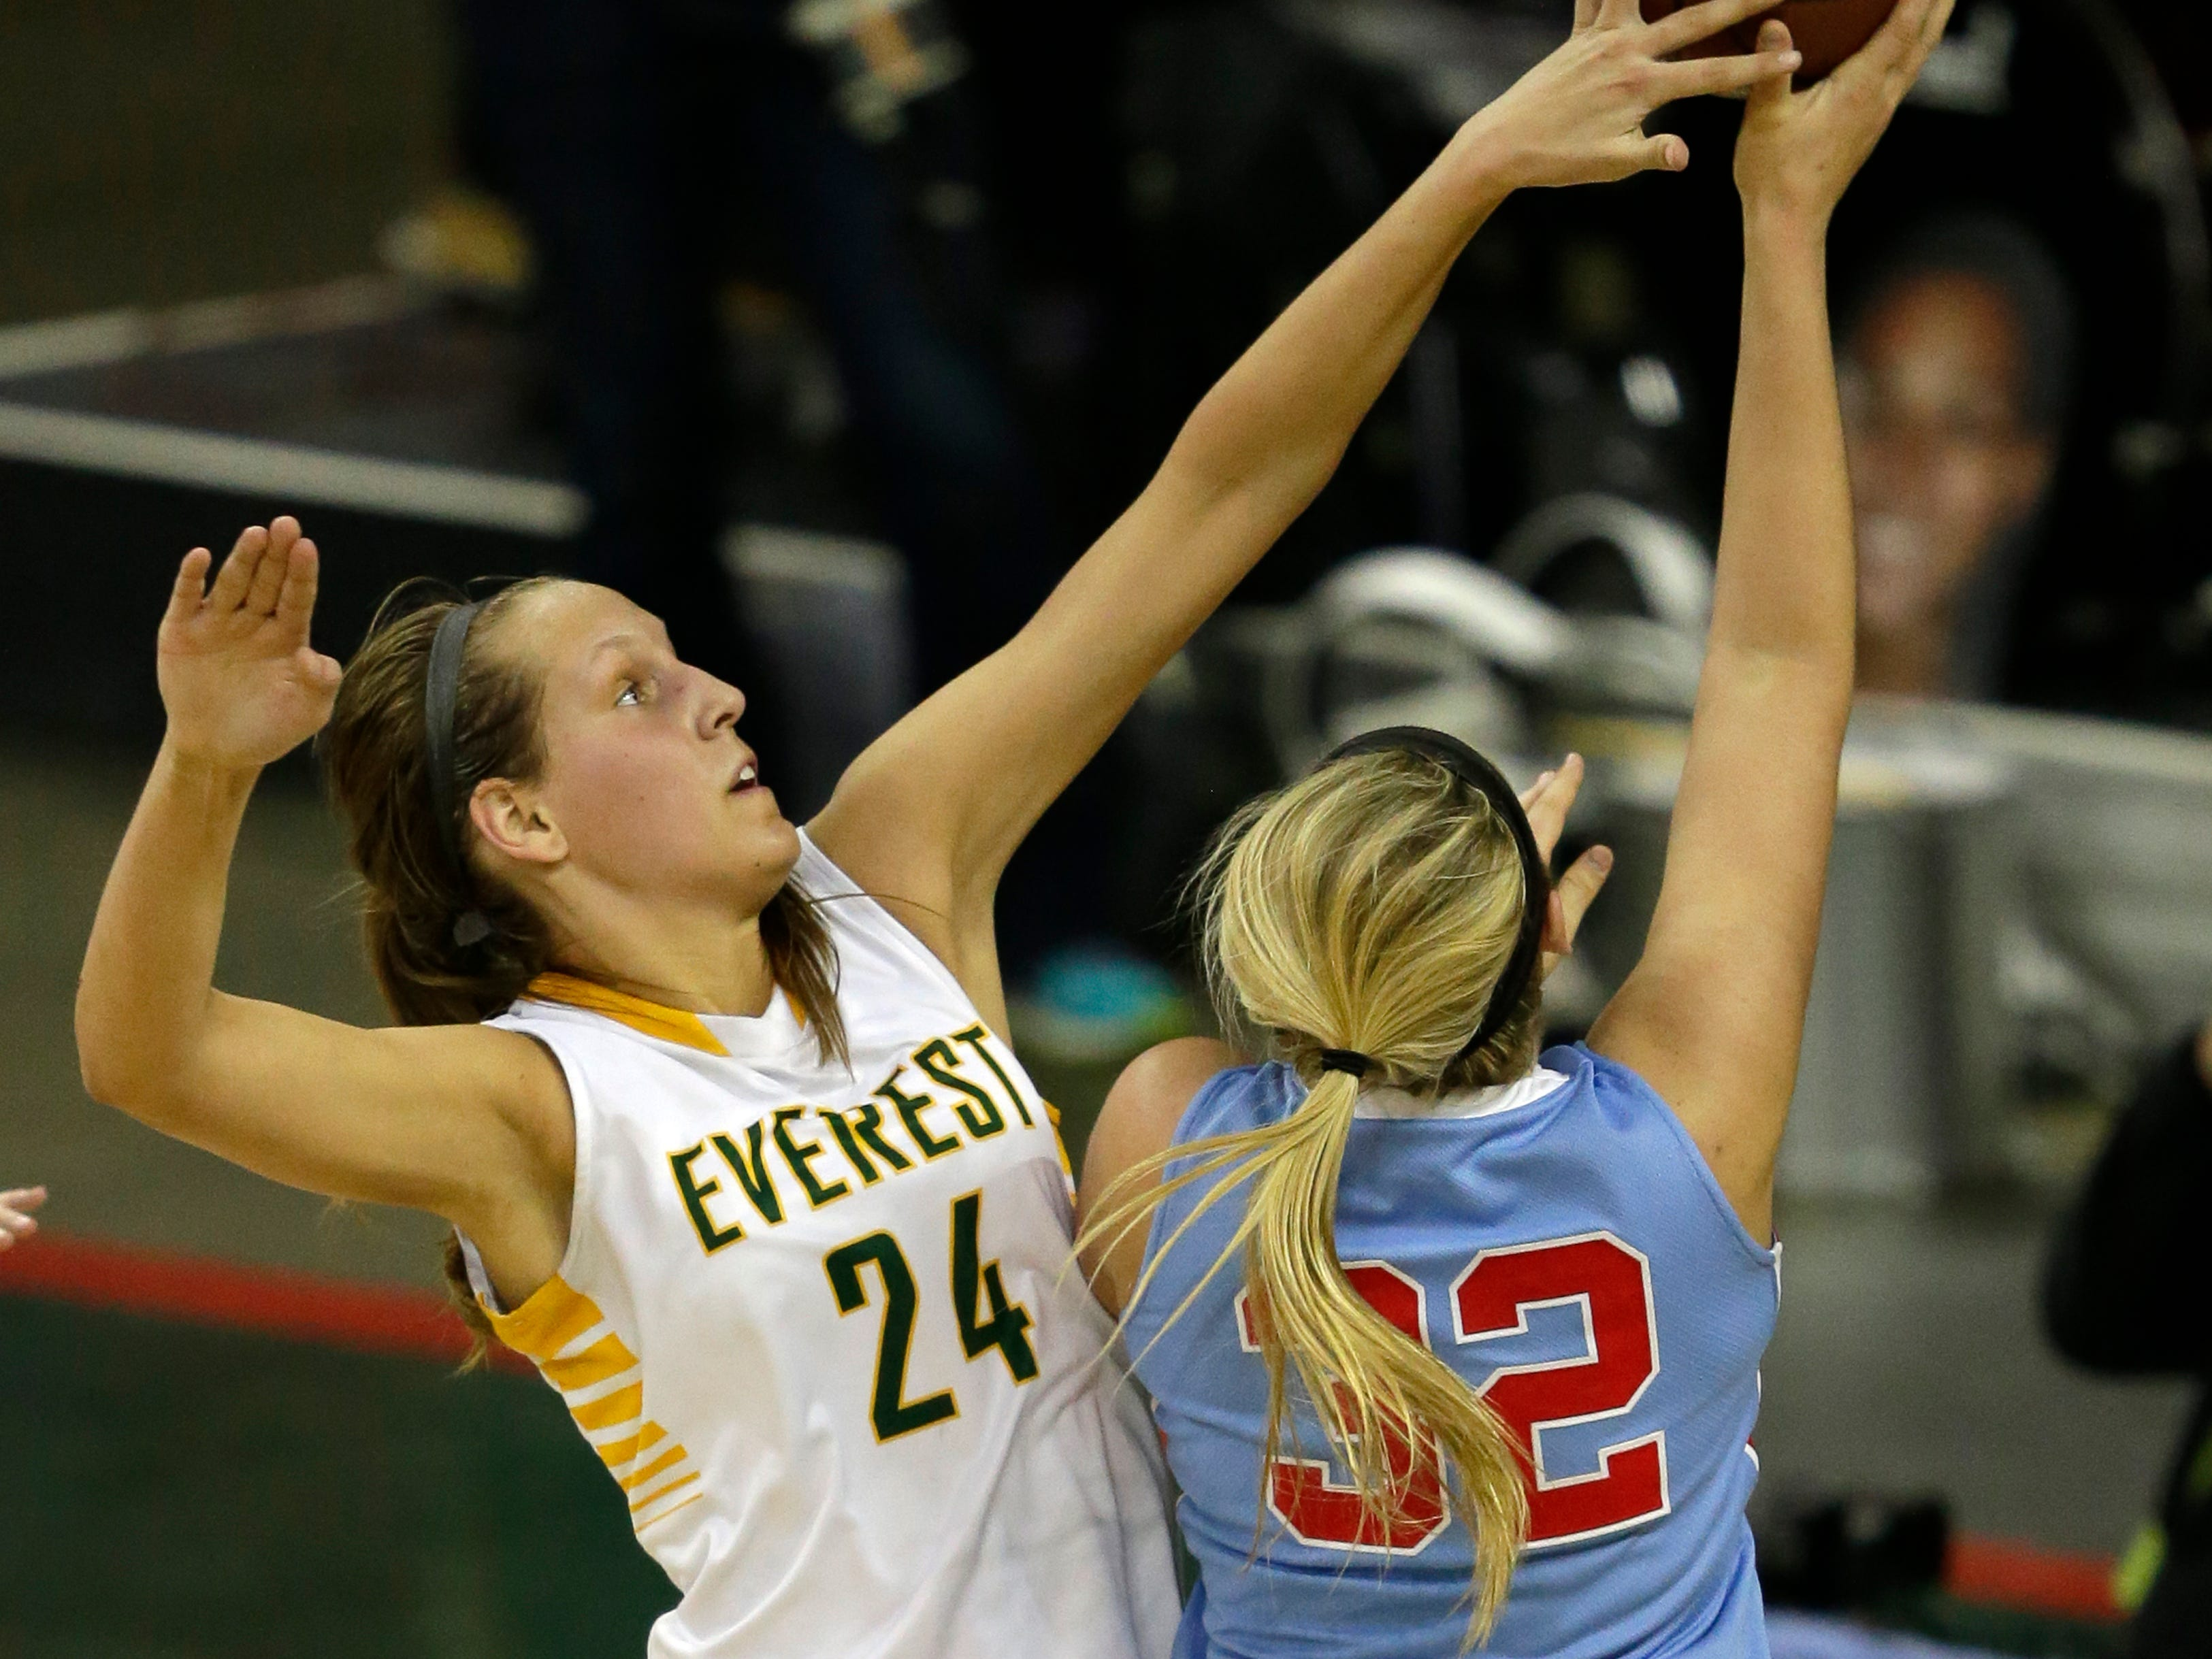 D.C. Everest's Taylor Hodell, left, blocks a shot attempt by Arrowhead's Kayla Lorenz during their WIAA Division 1 state semifinal game last month. Hodell was selected to The Associated Press all-state girls basketball squad Thursday.